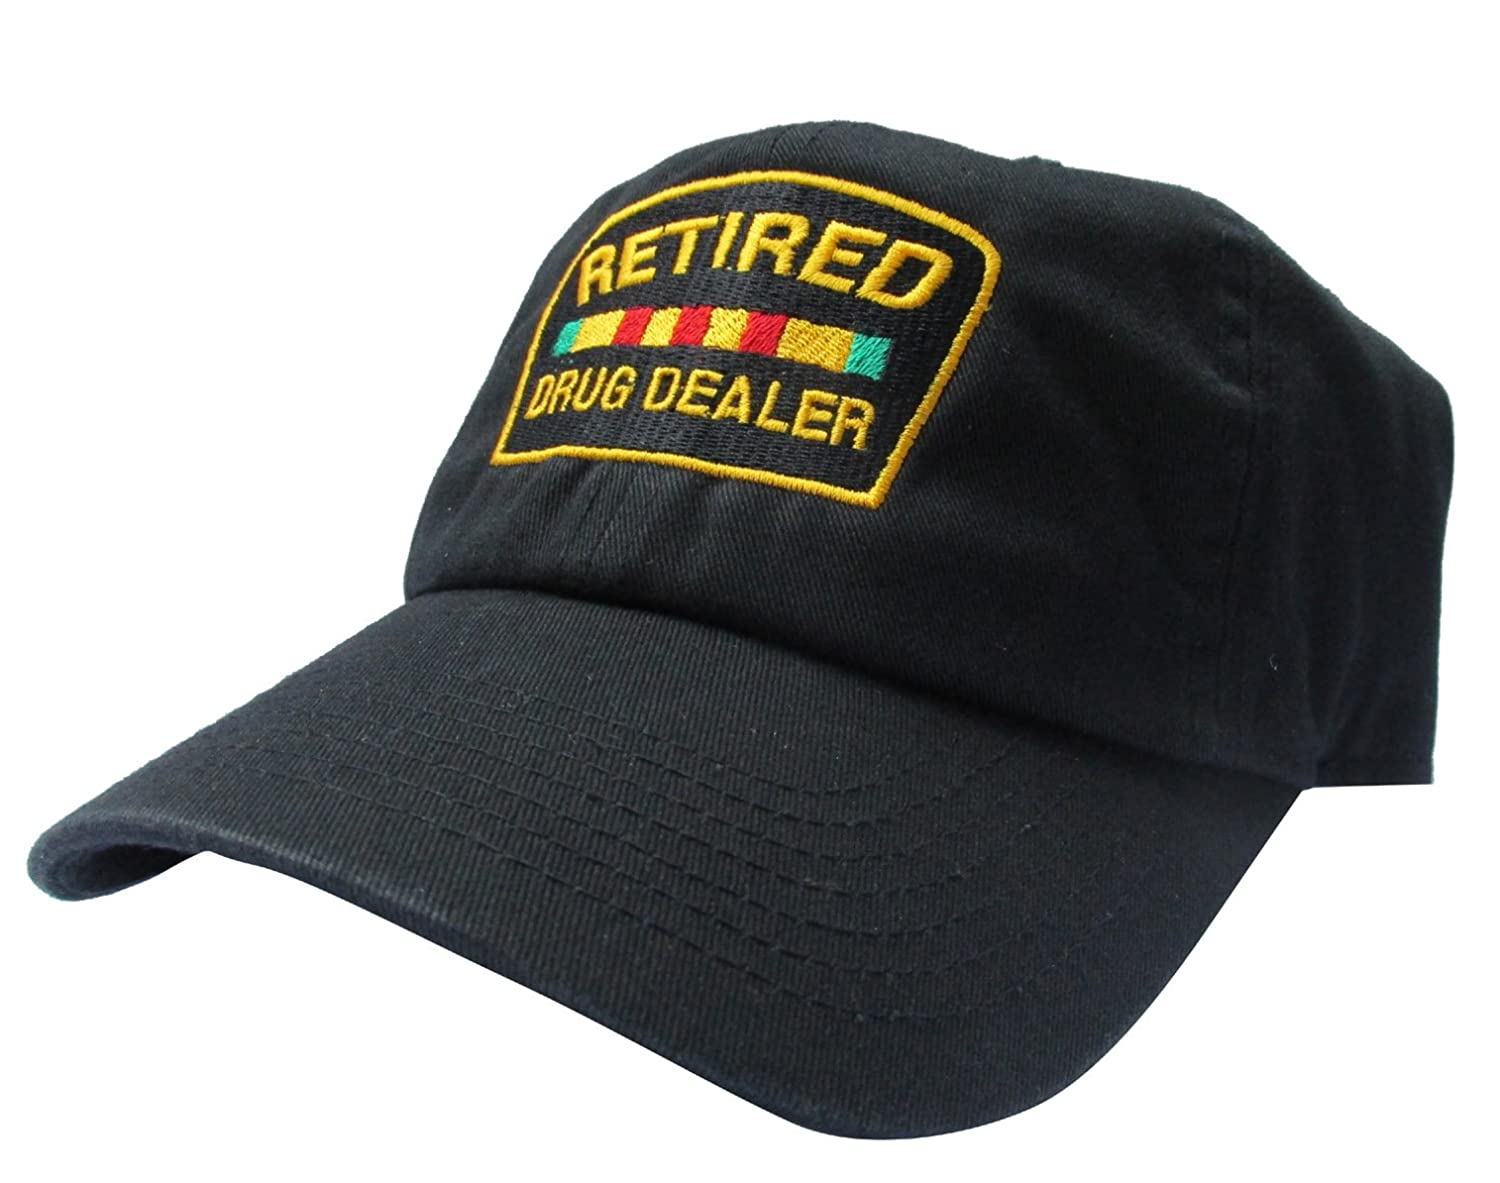 RobsTees Retired Drug Dealer Black Meme Unstructured Twill Cotton Low Profile Dad Hat Cap at Amazon Mens Clothing store: